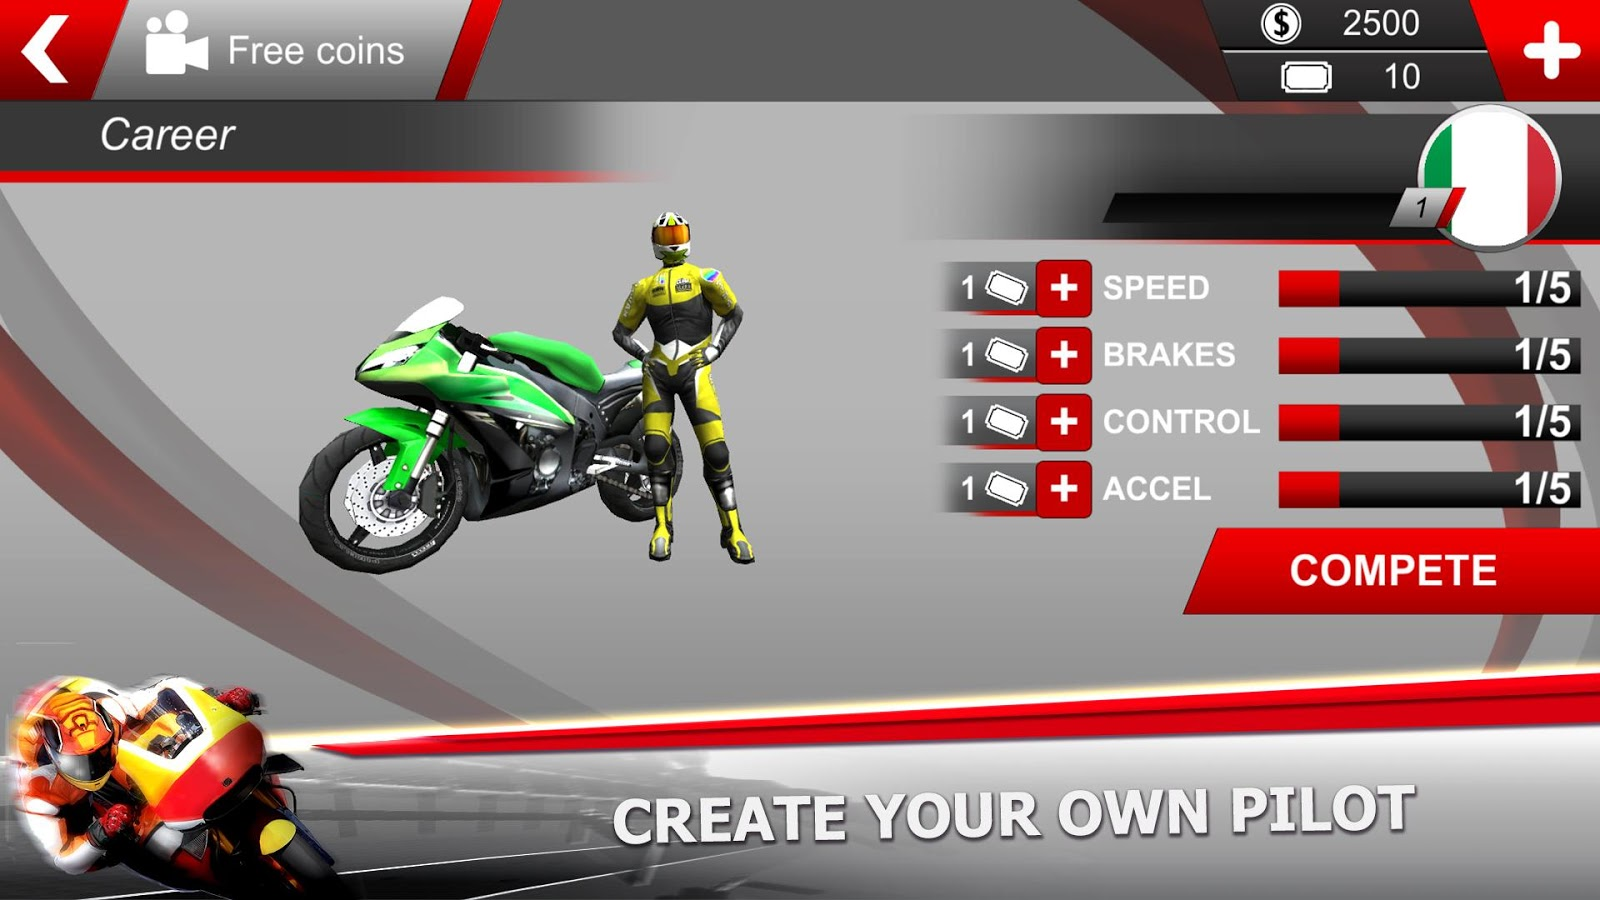 Moto Gp News Android Apps On Google Play | MotoGP 2017 Info, Video, Points Table